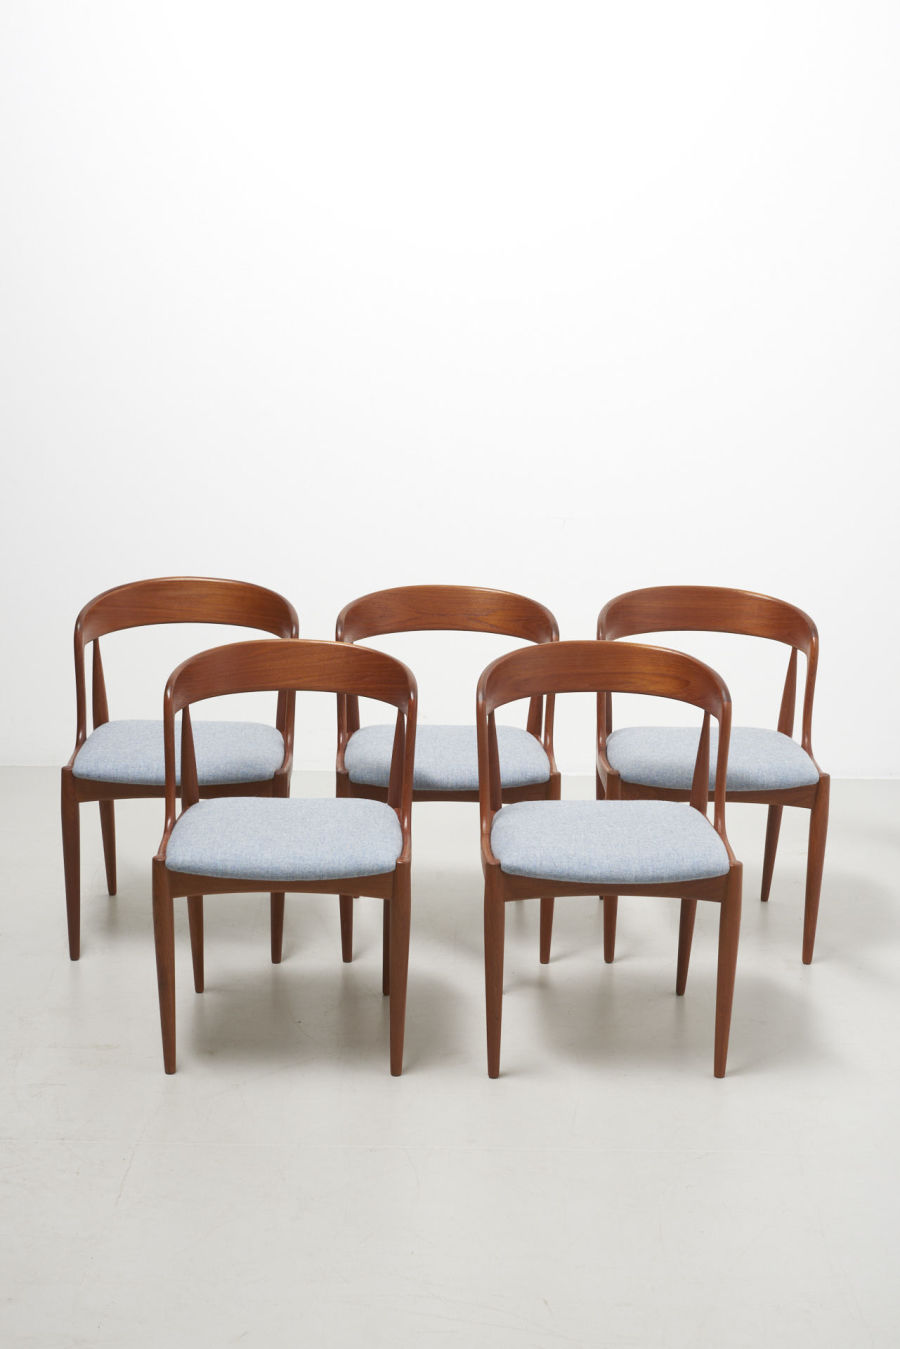 modestfurniture-vintage-2164-johannes-andersen-dining-chairs-uldum-model-1601